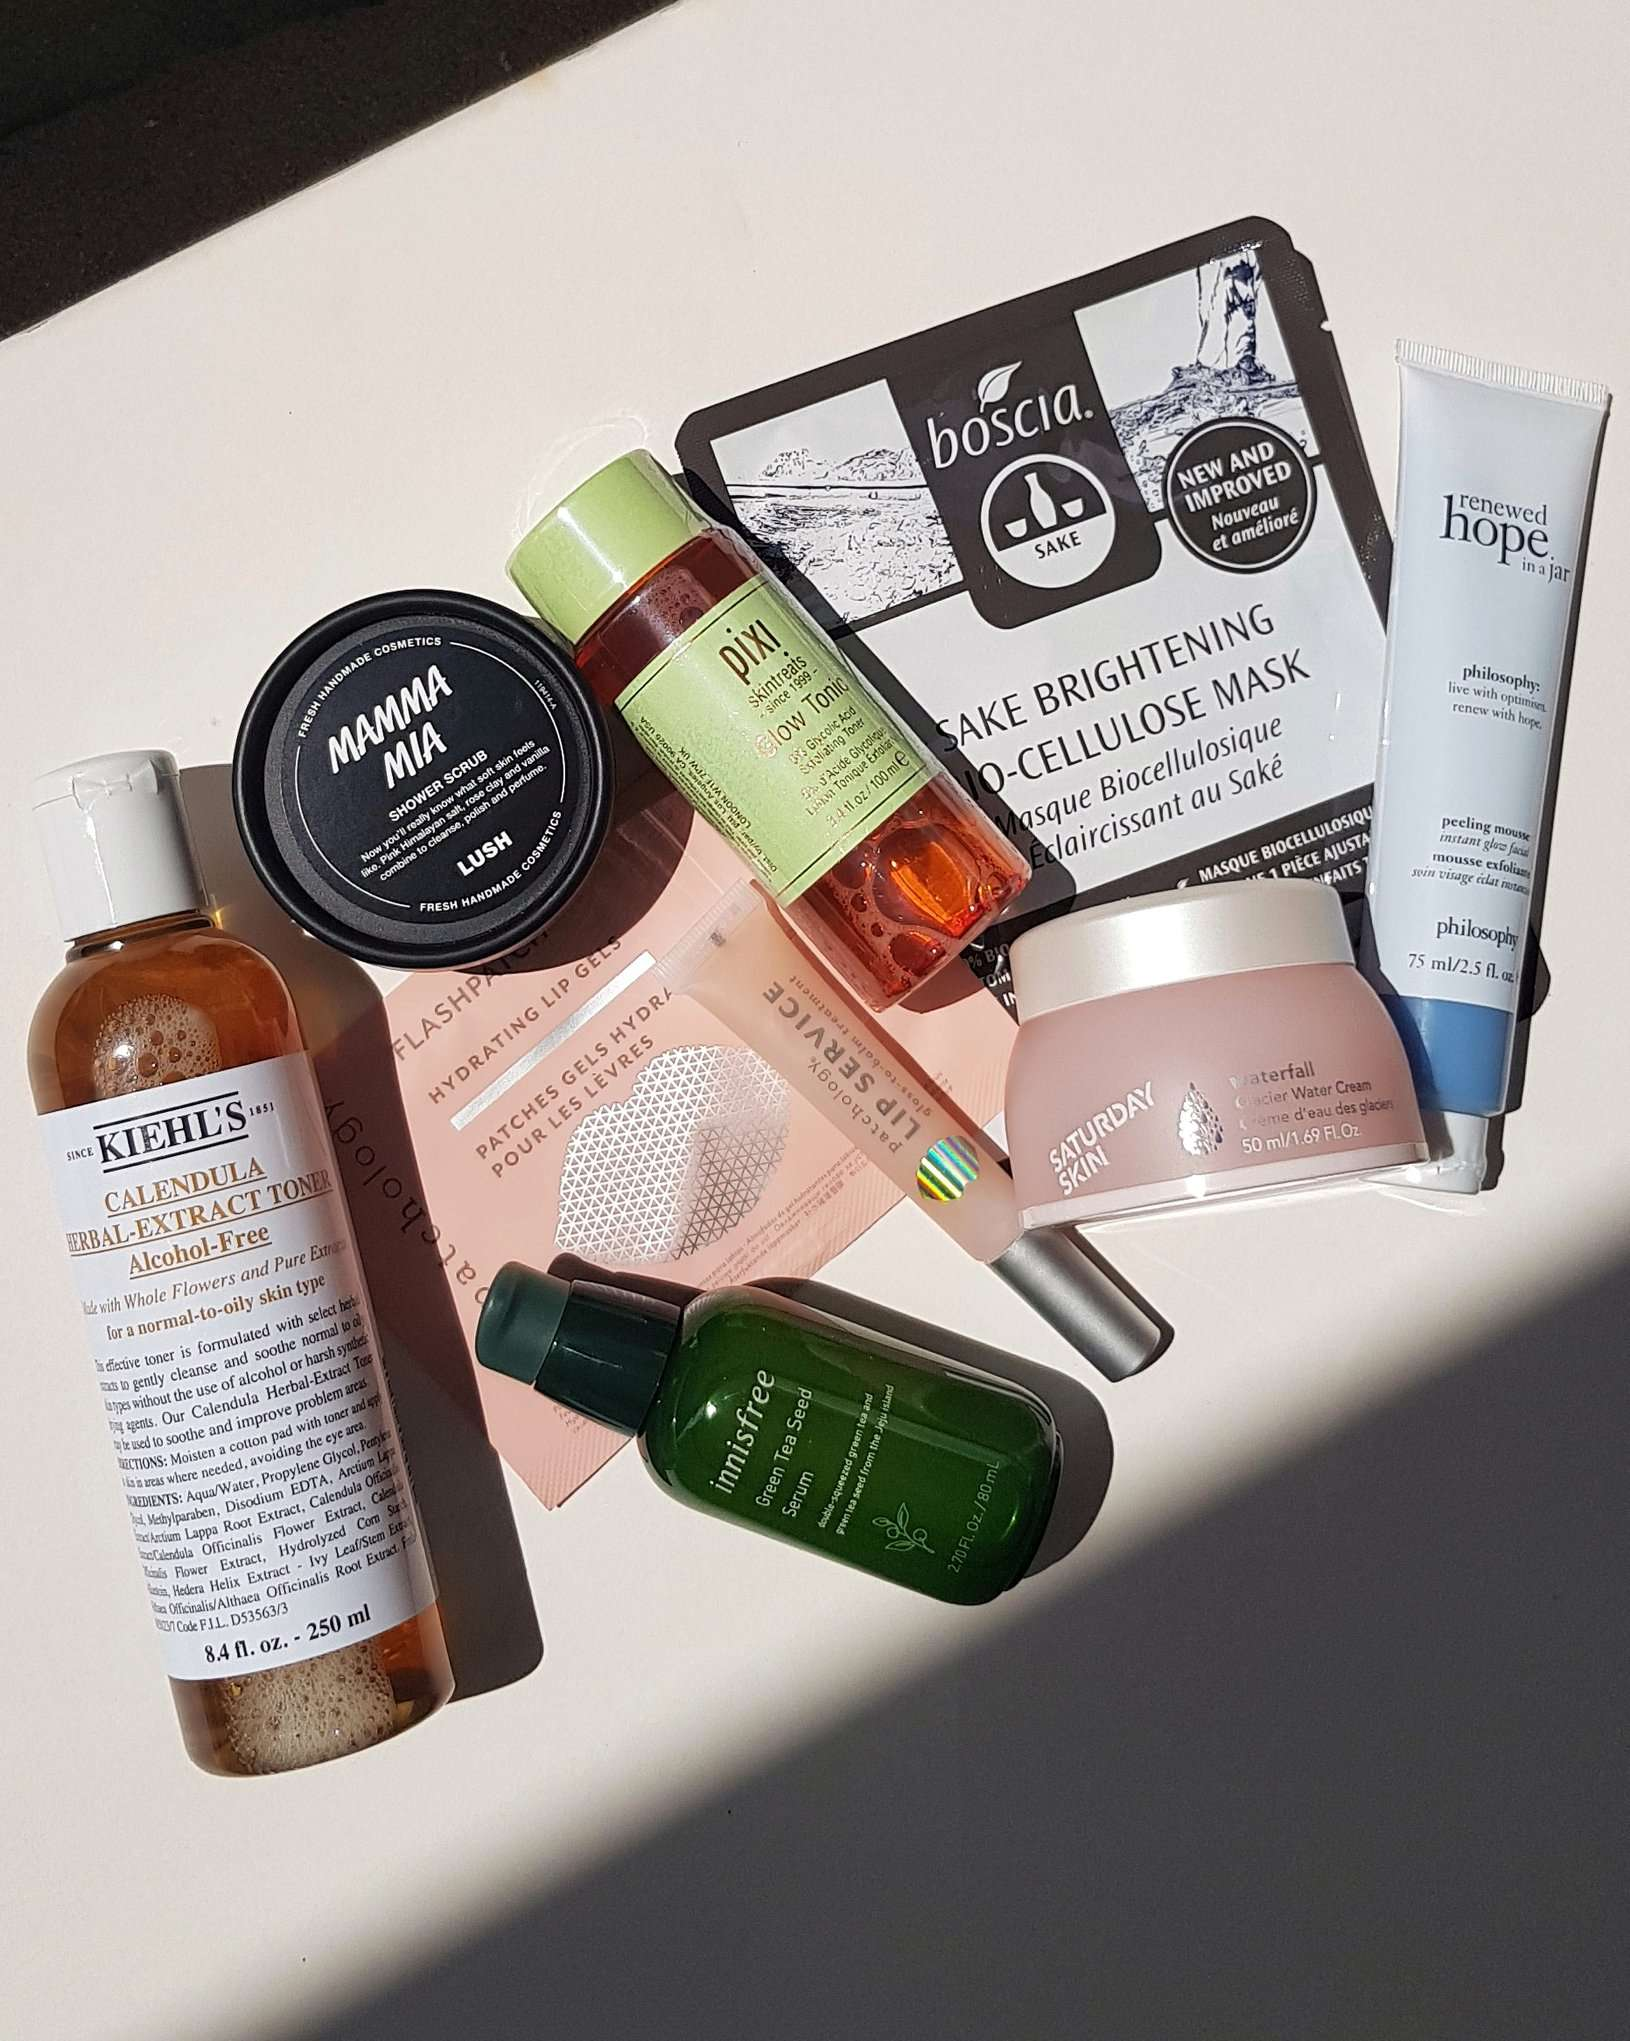 The Skincare Lover, $188 (approx. $300 worth of products)